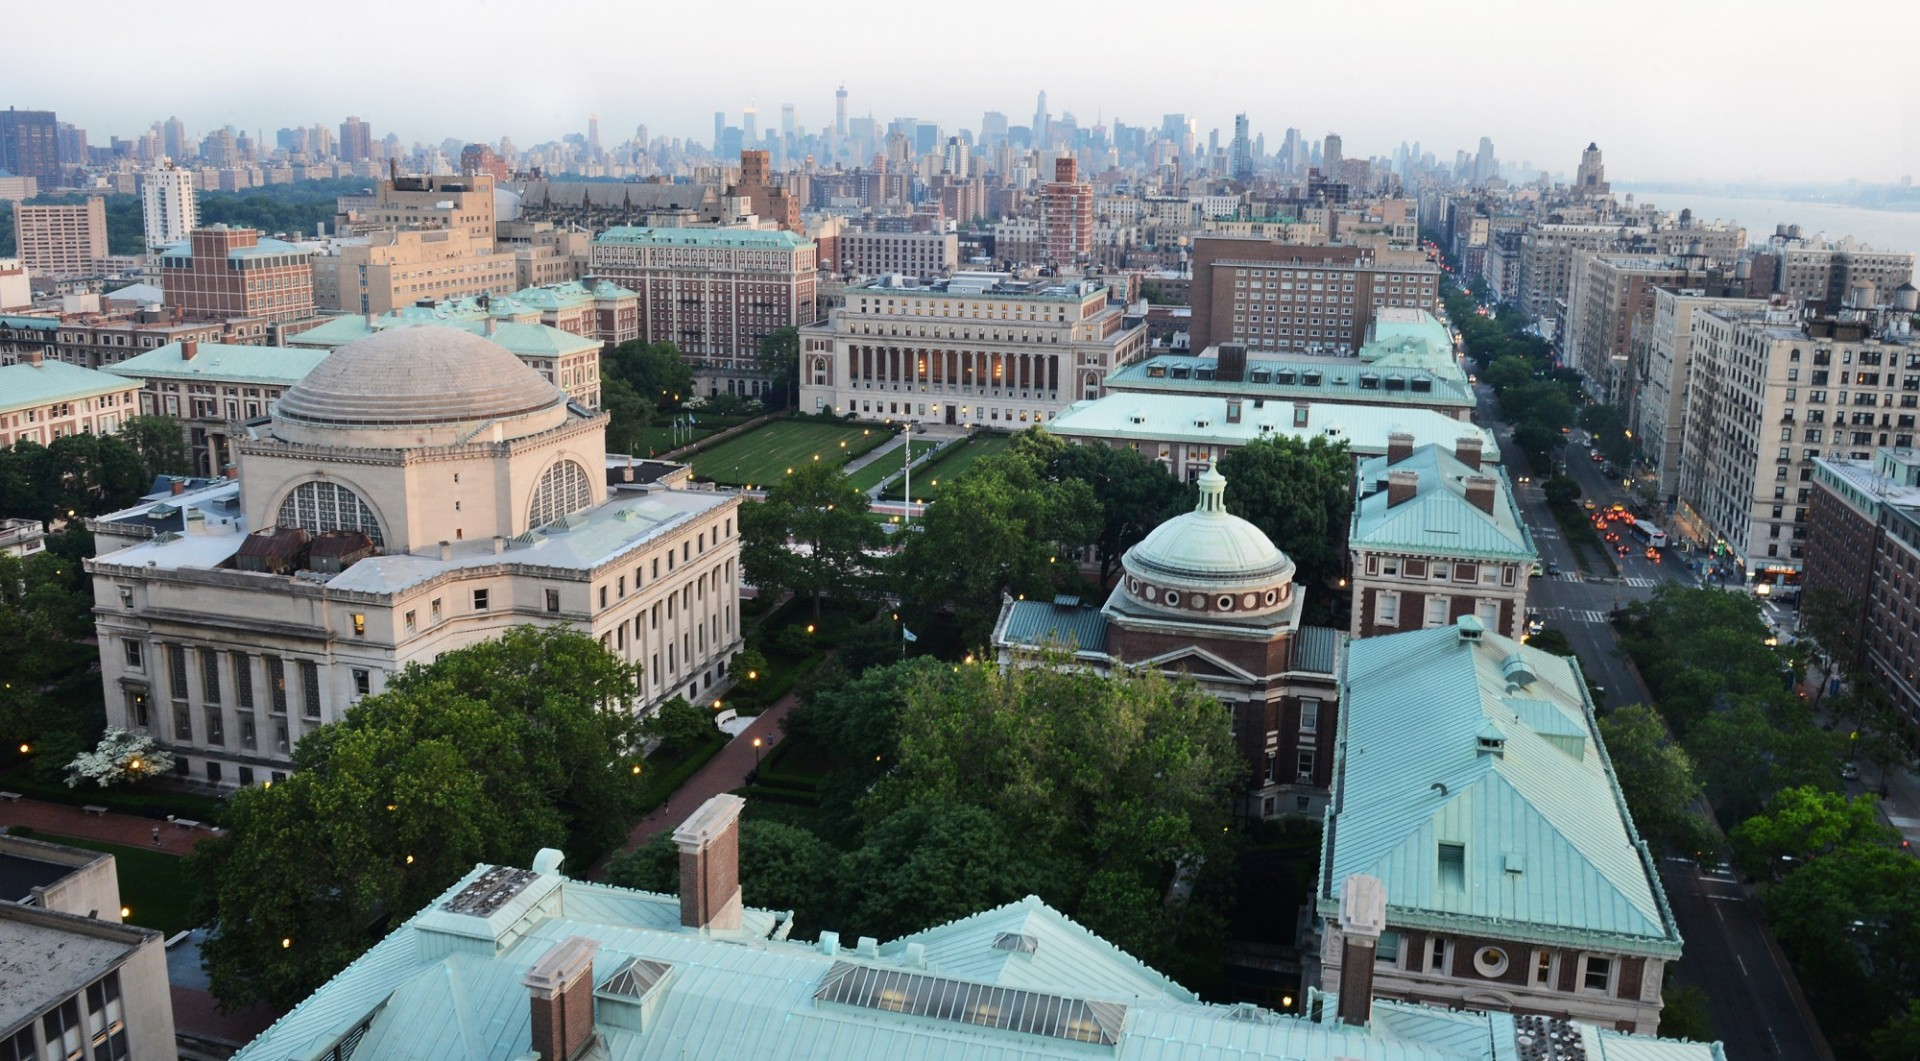 Columbia campus as seen from an aerial view